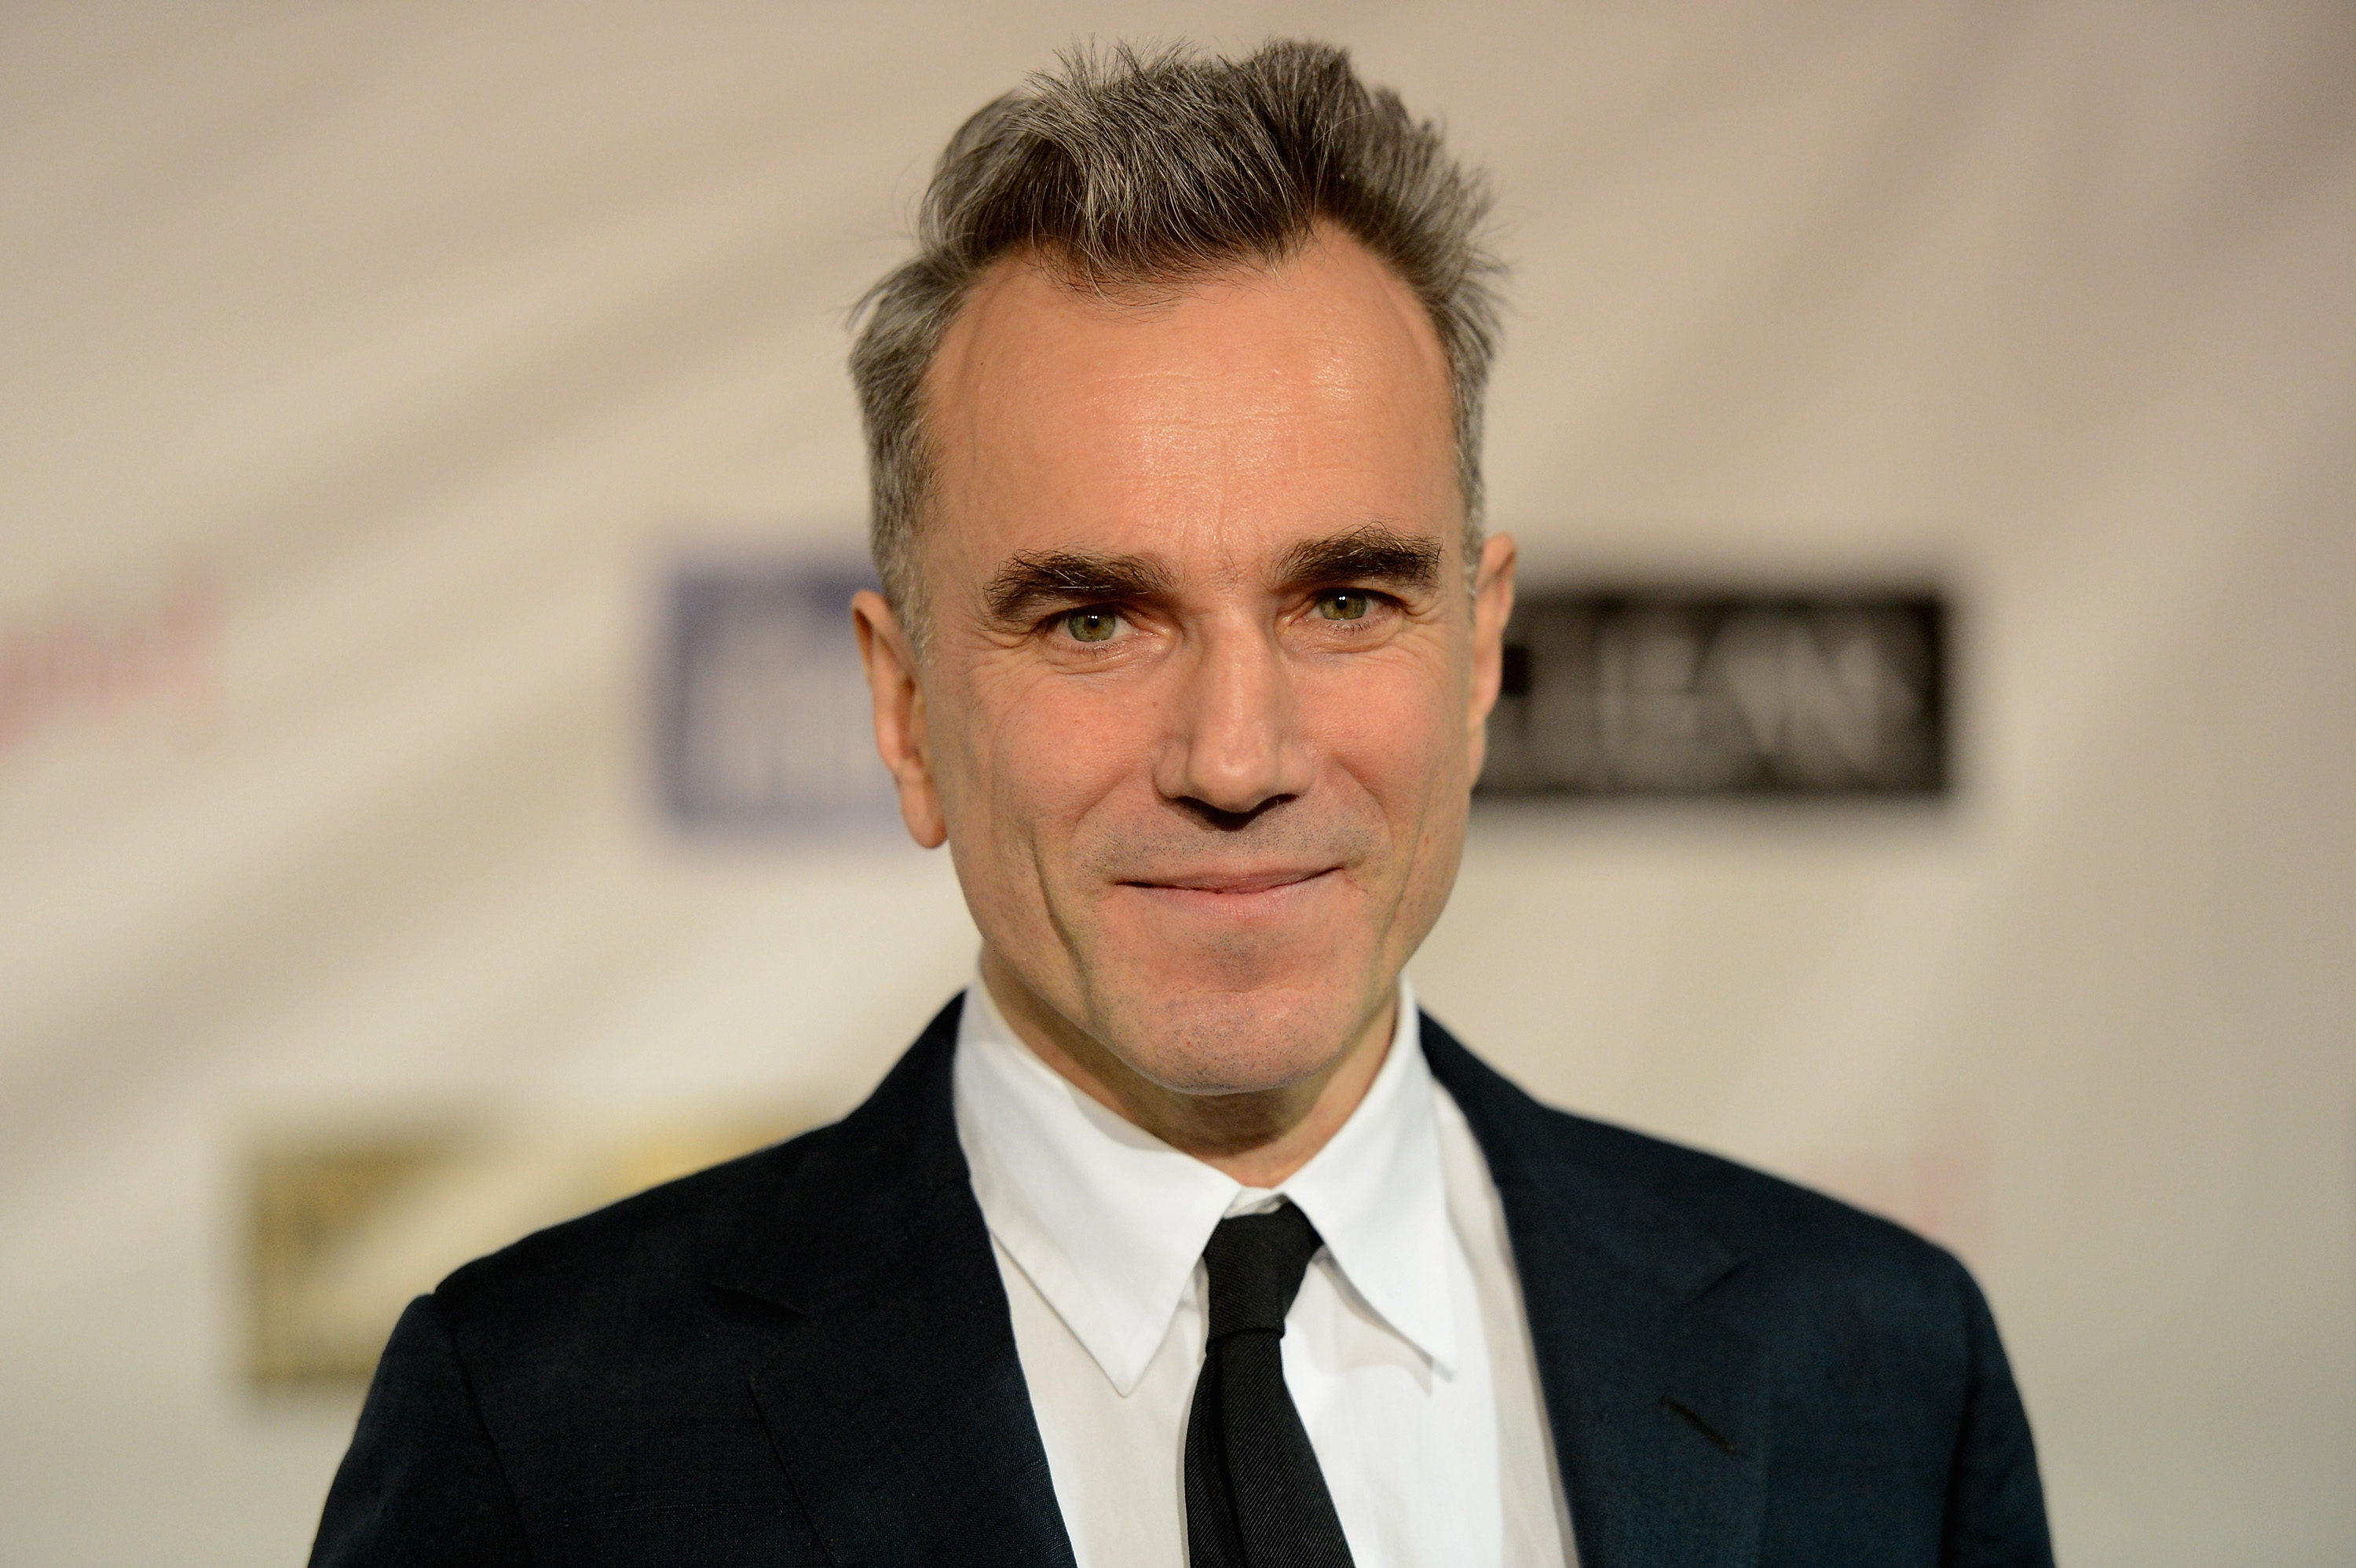 DANIEL DAY-LEWIS REVEALS THAT HE'S BEEN PLAYING 007 FOR THREE DECADES